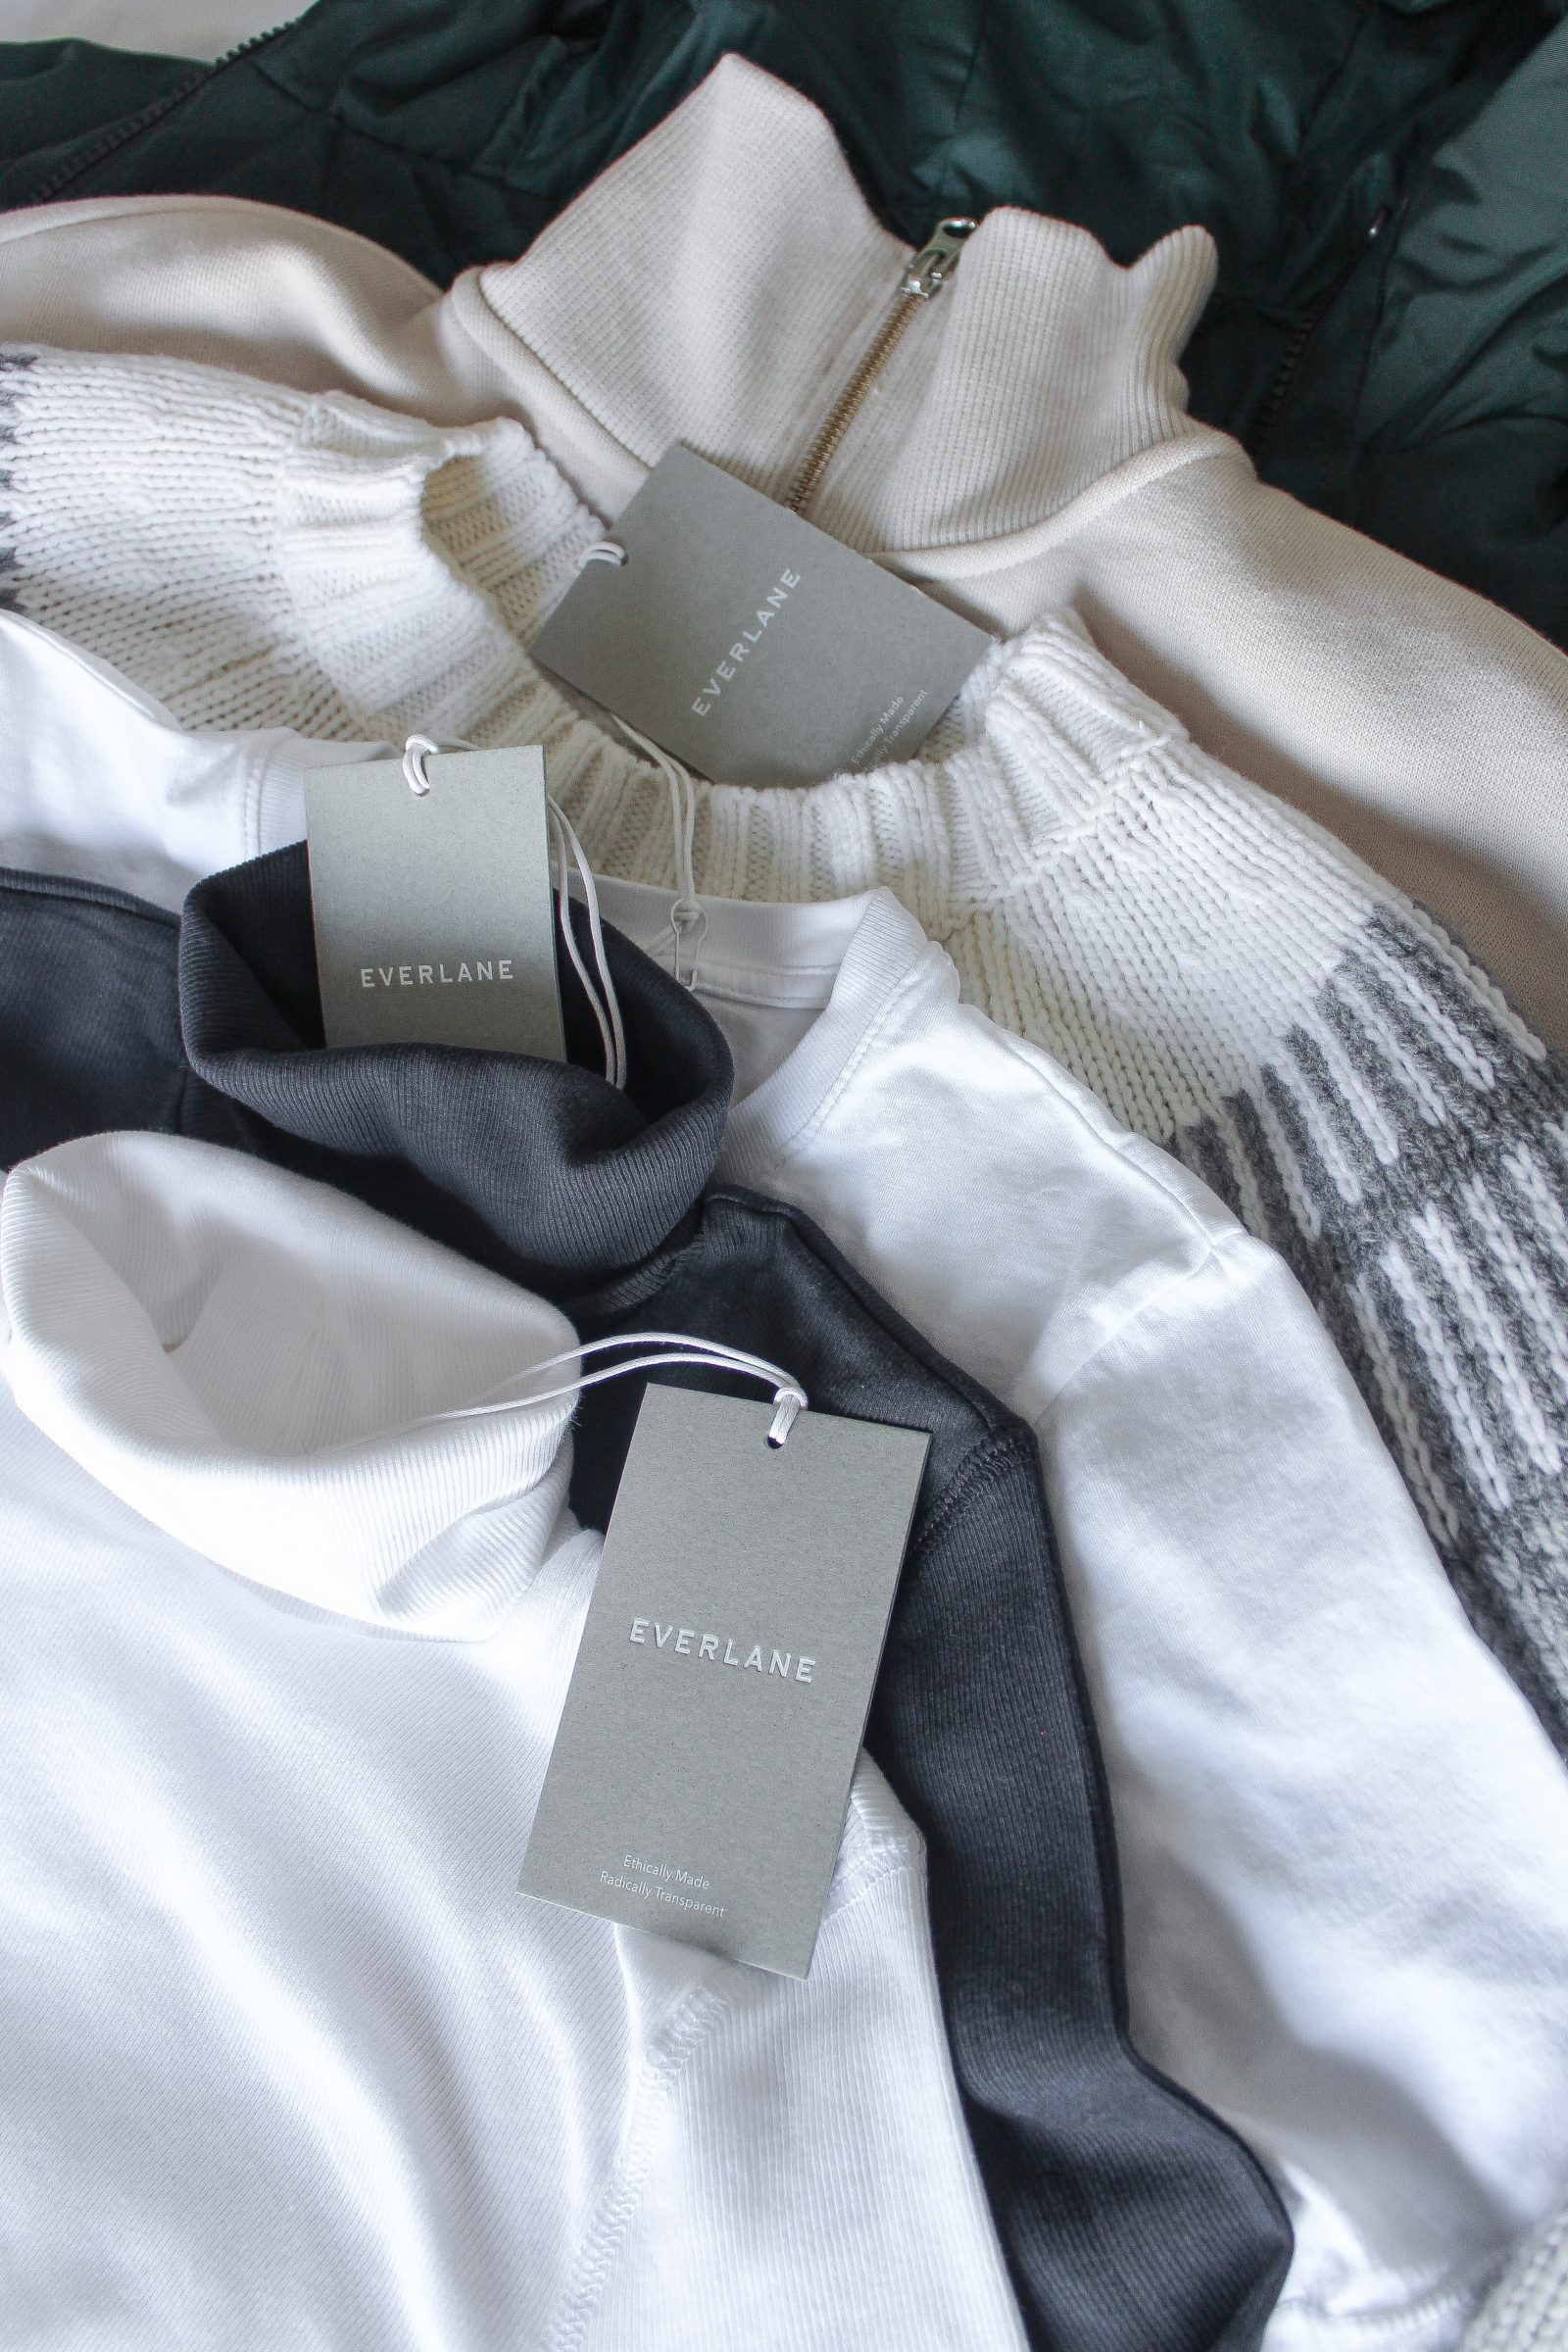 A white and black turtleneck, two sweaters, and a green coat neatly laid on top of one another on the bed, with Everlane tags made visible